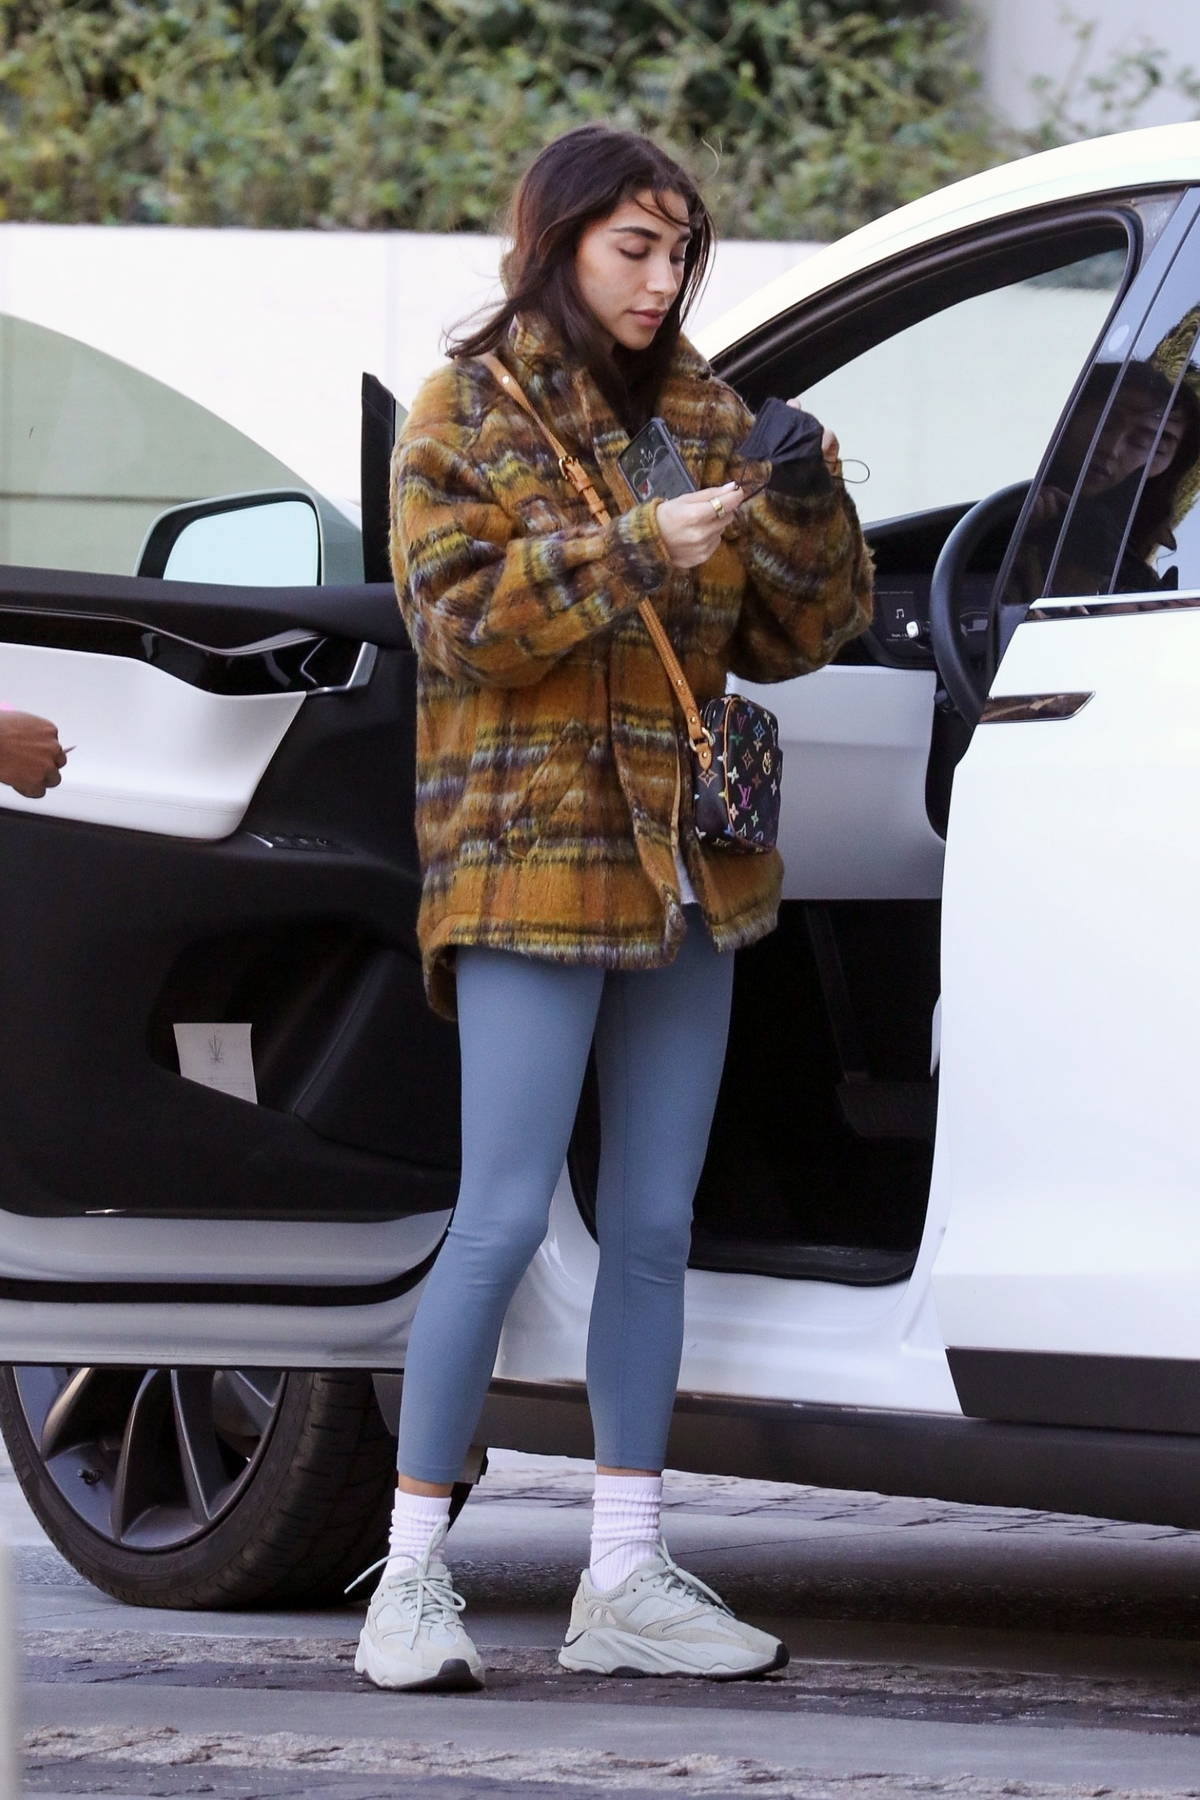 Chantel Jeffries wears a flannel shirt and leggings as she meets up with friends at a local hotel in Los Angeles